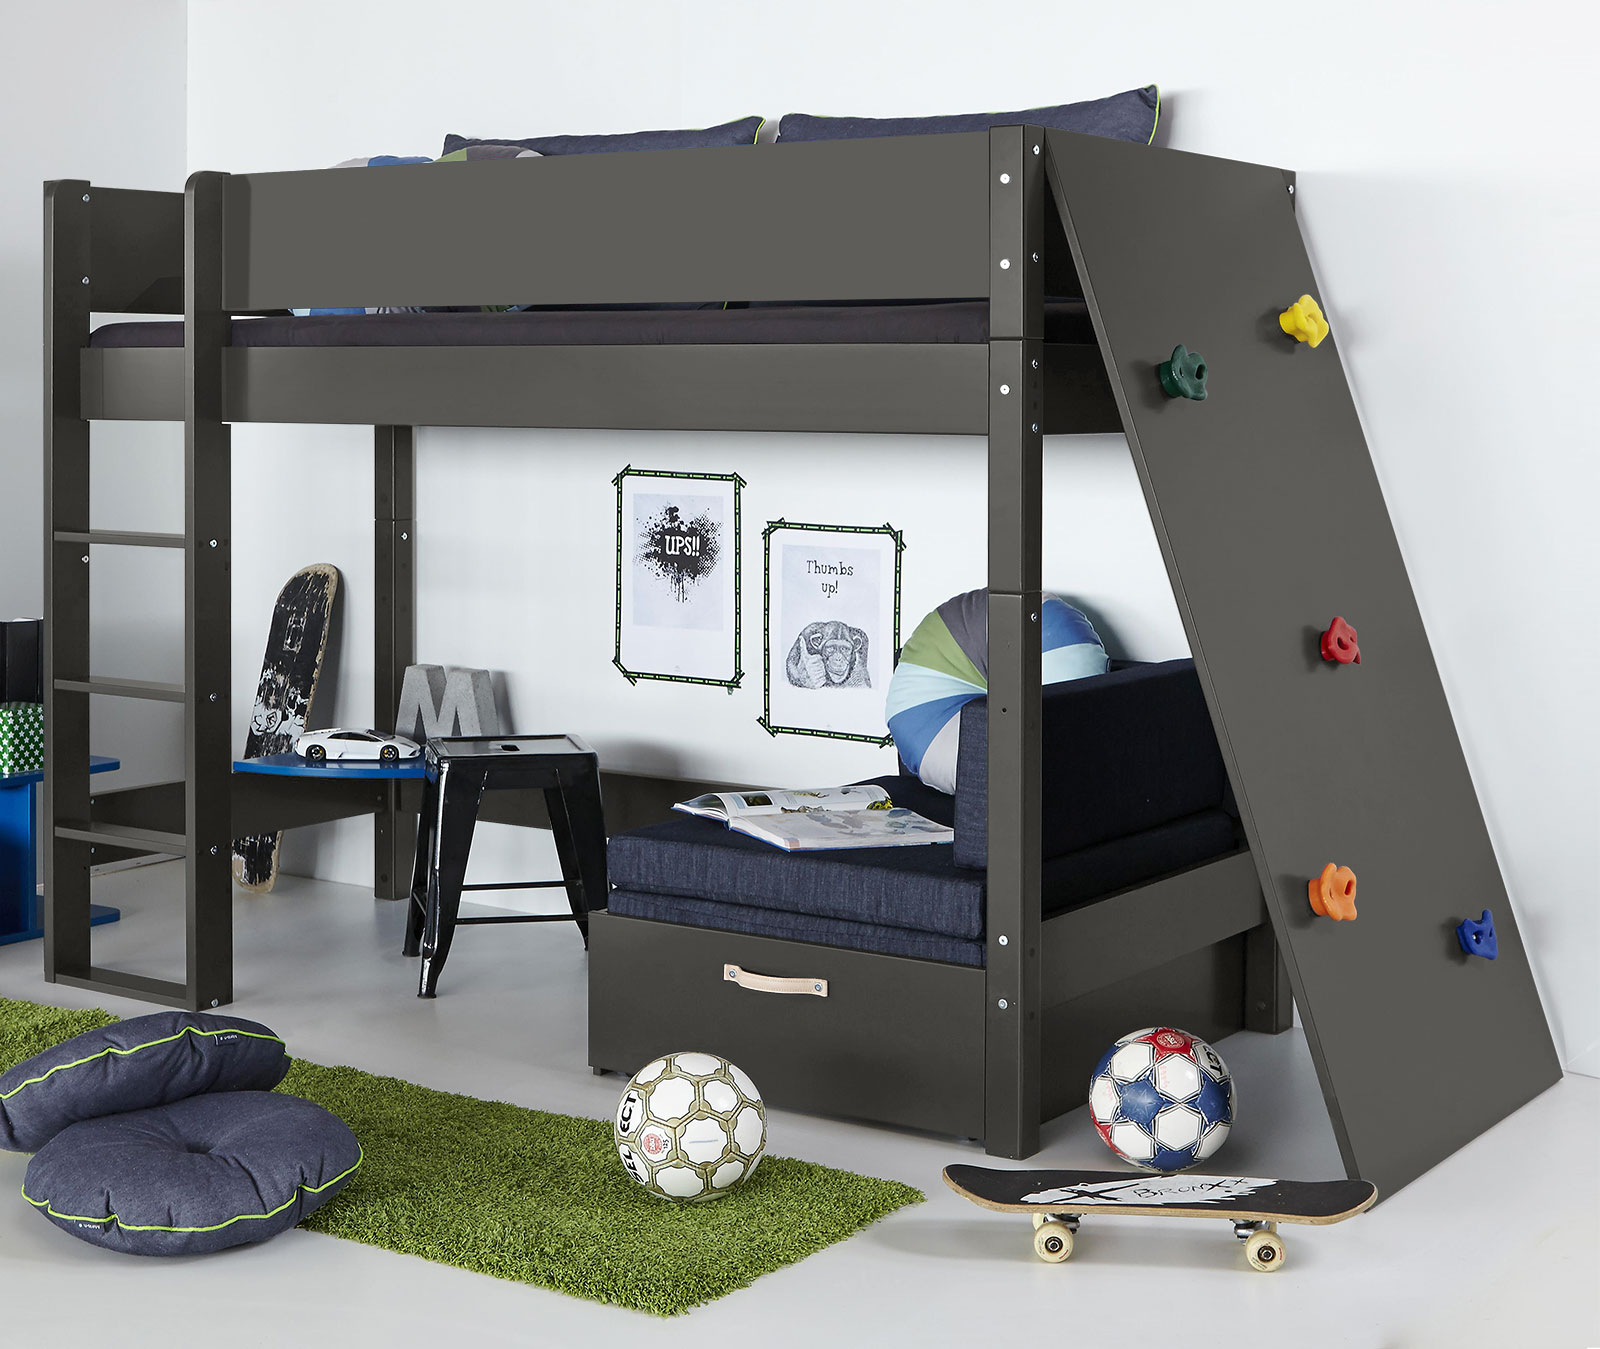 midi hochbett aus mdf und buche mit kletterwand kids town. Black Bedroom Furniture Sets. Home Design Ideas